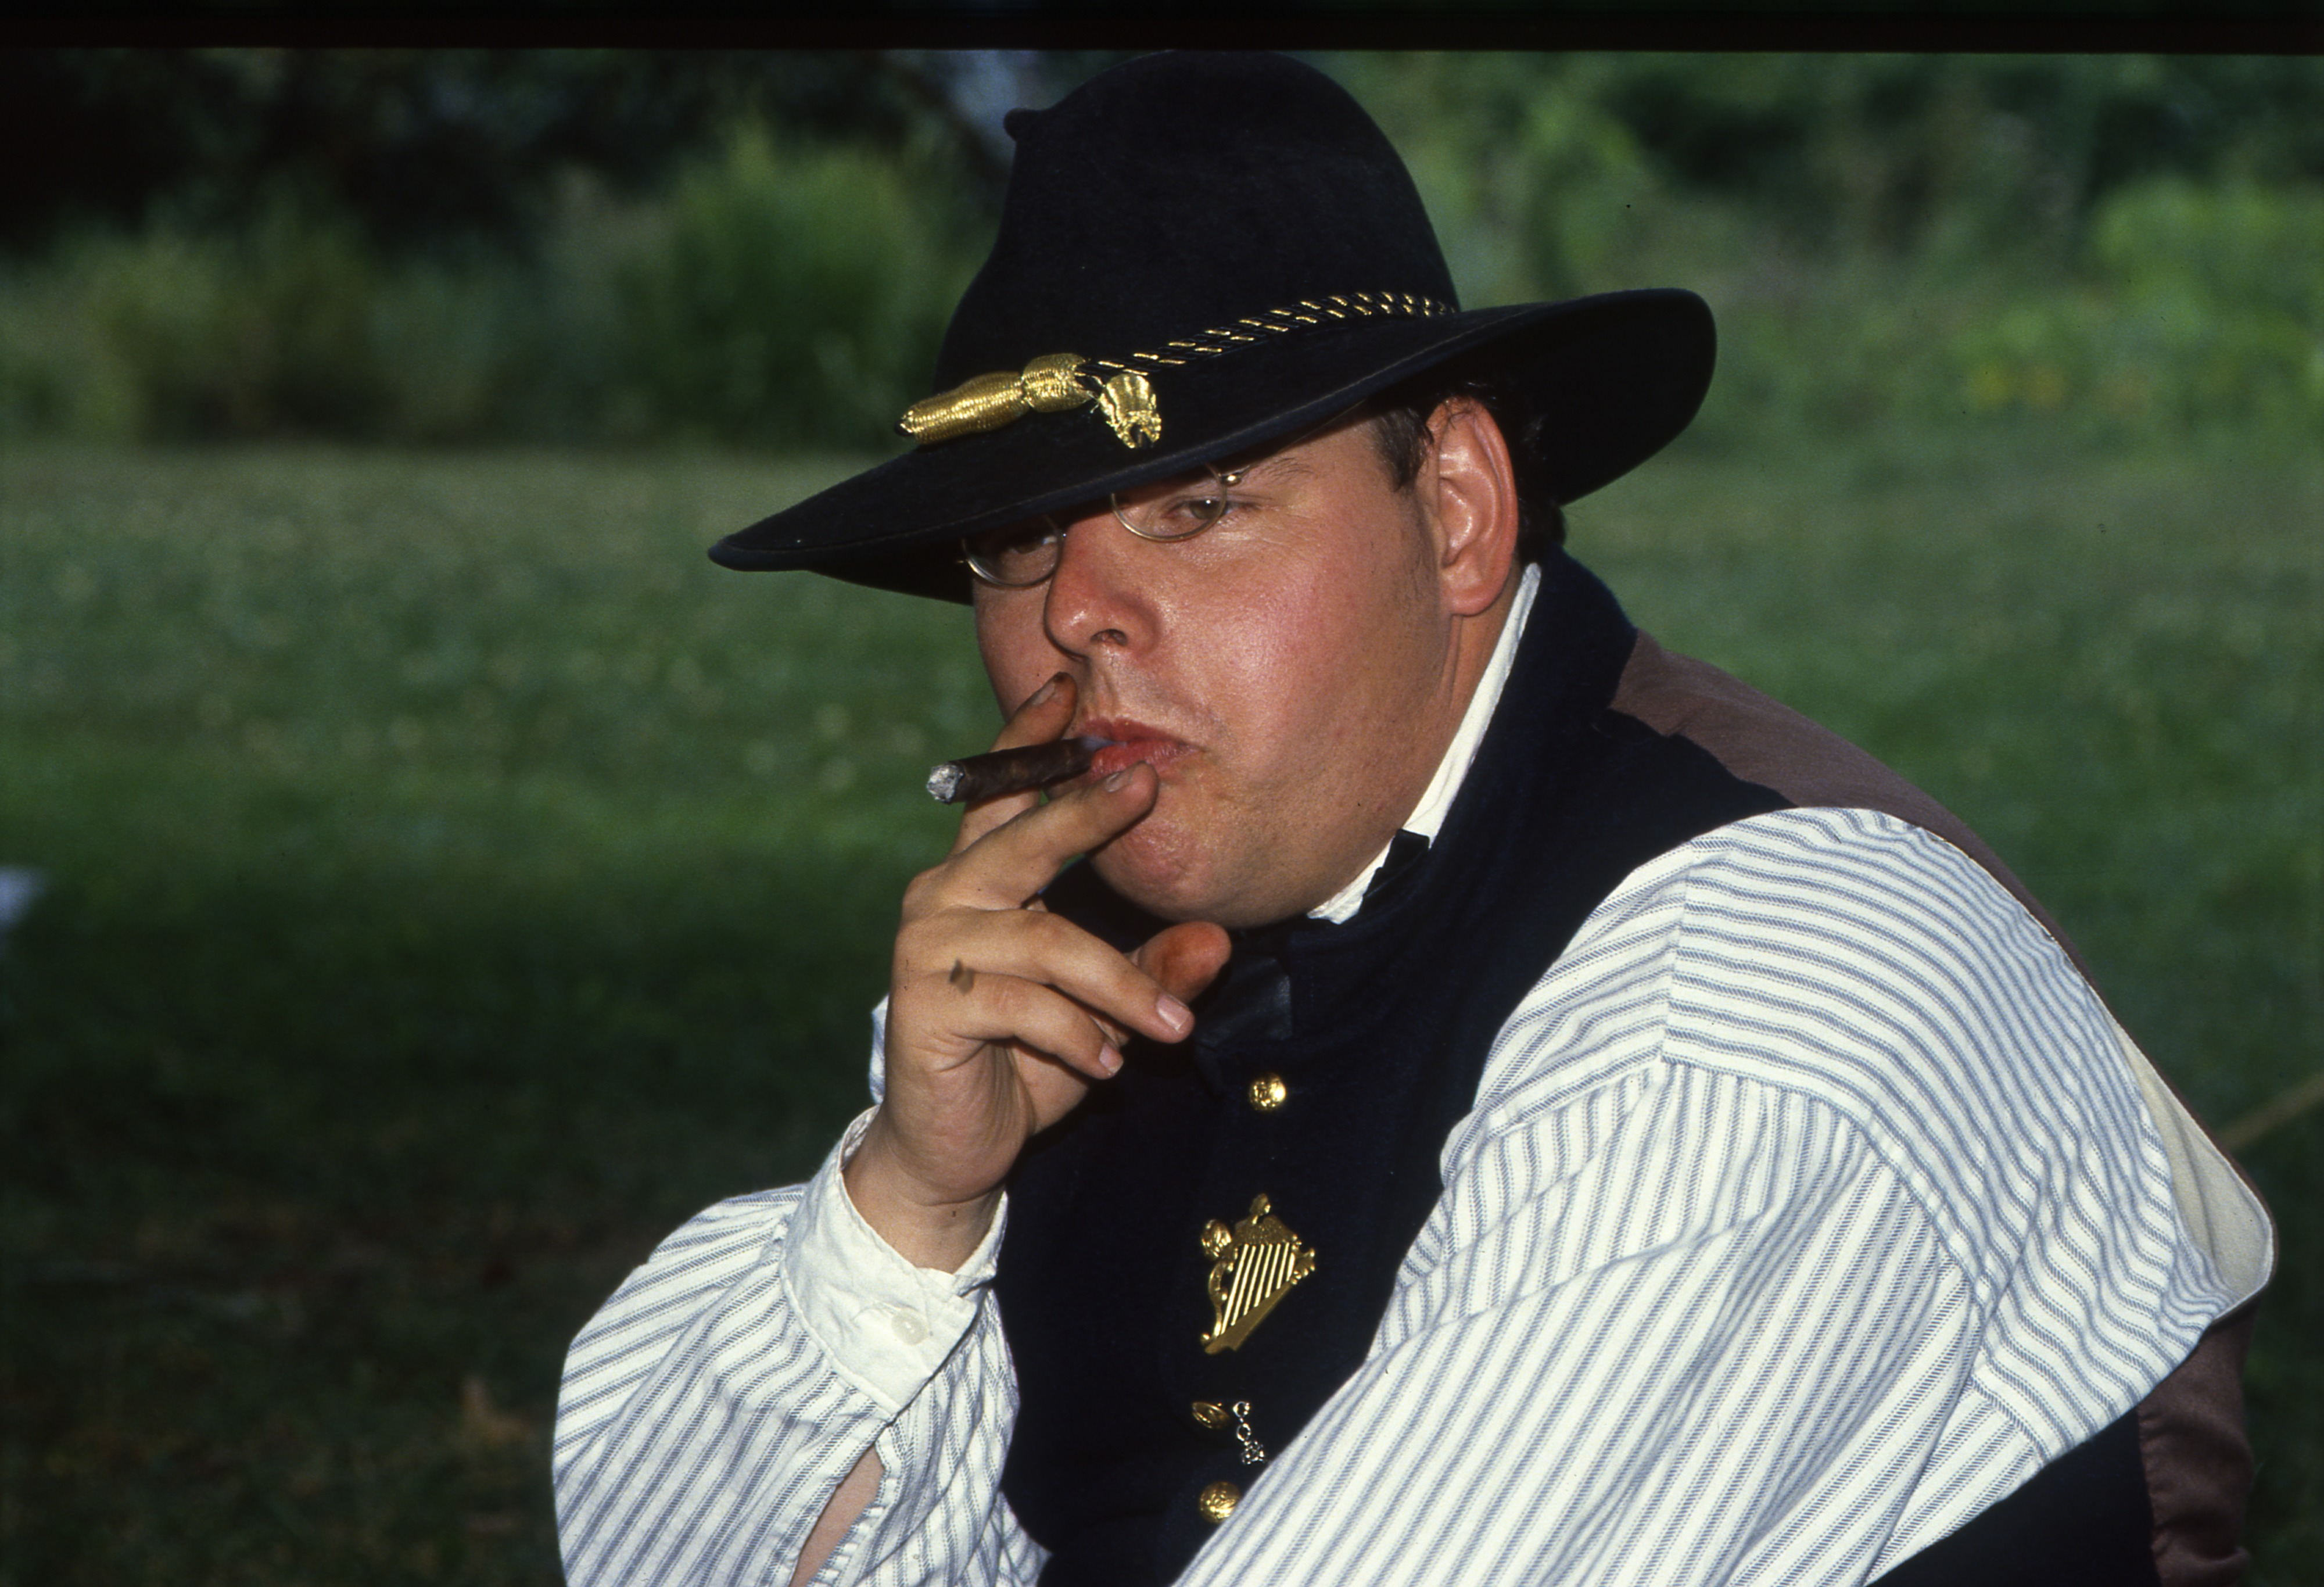 Tom King, Civil War Era Re-enactor At Cobblestone Farm, July 28, 1990 image